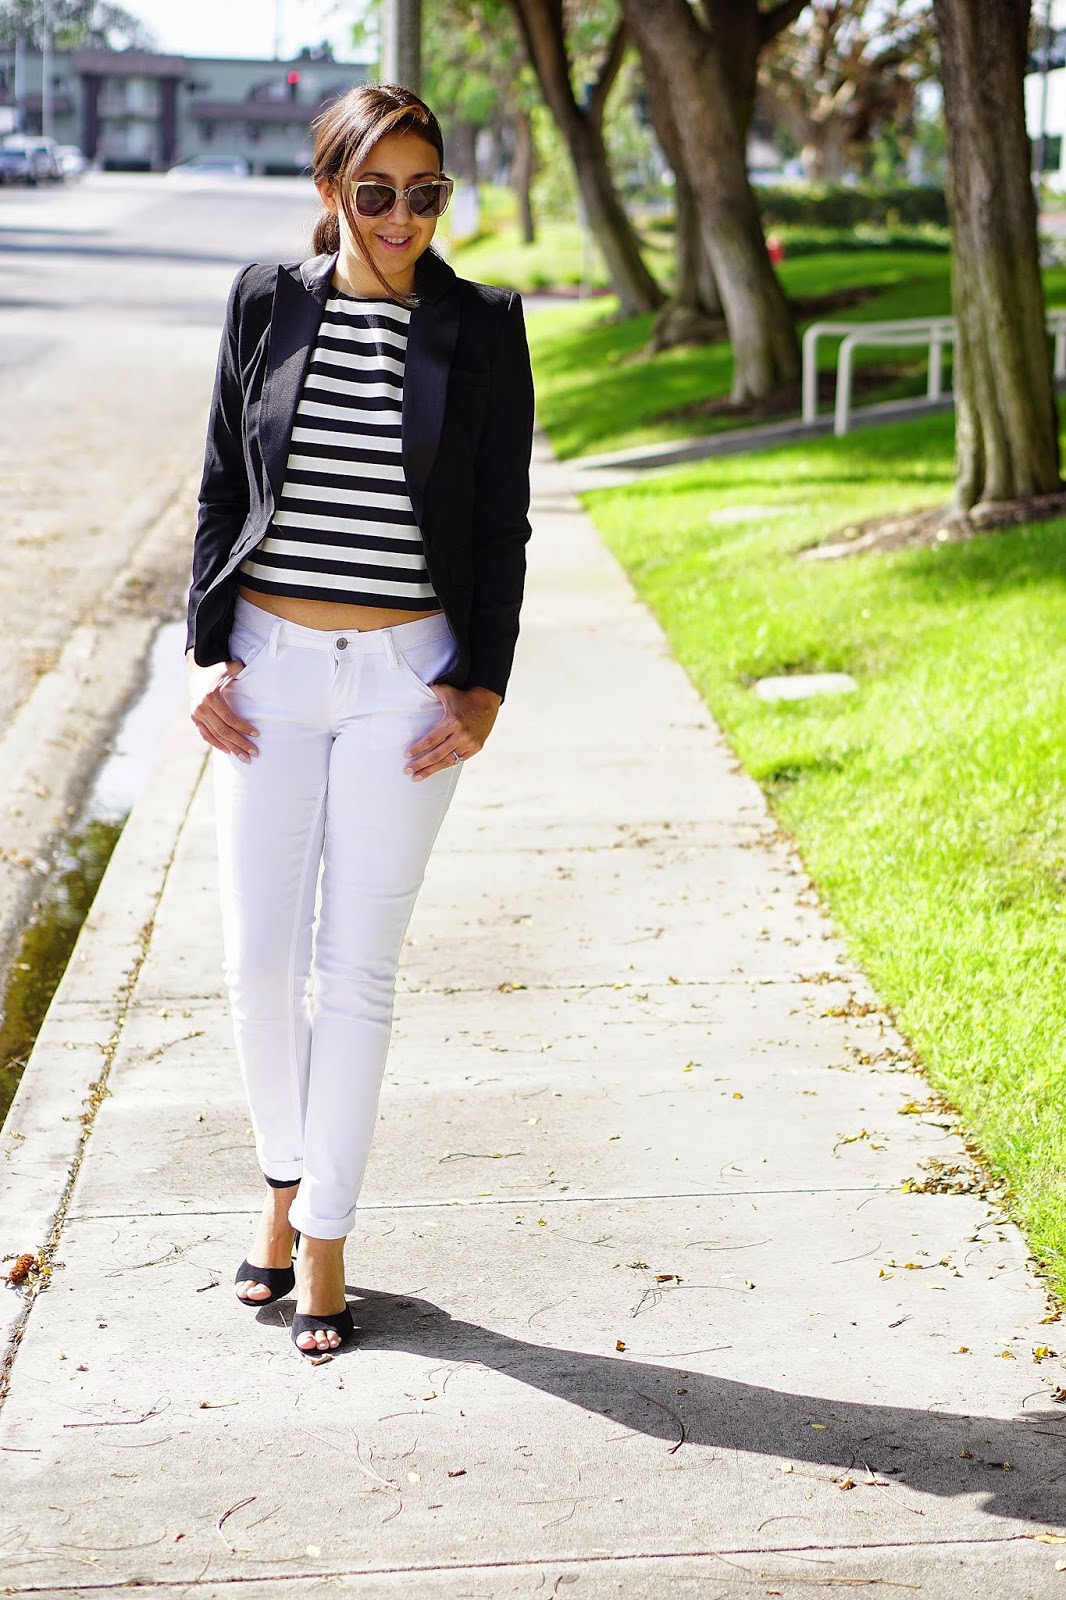 JCPenney, MNG by Mango Striped Crop Top, White Jeans, Arizona Skinny Jeans, Shoemint Penny Heels, Shoemint Heels, Chilli Beans Sunglasses, Altuzarra for Target Black Blazer, Black Blazer, Target,